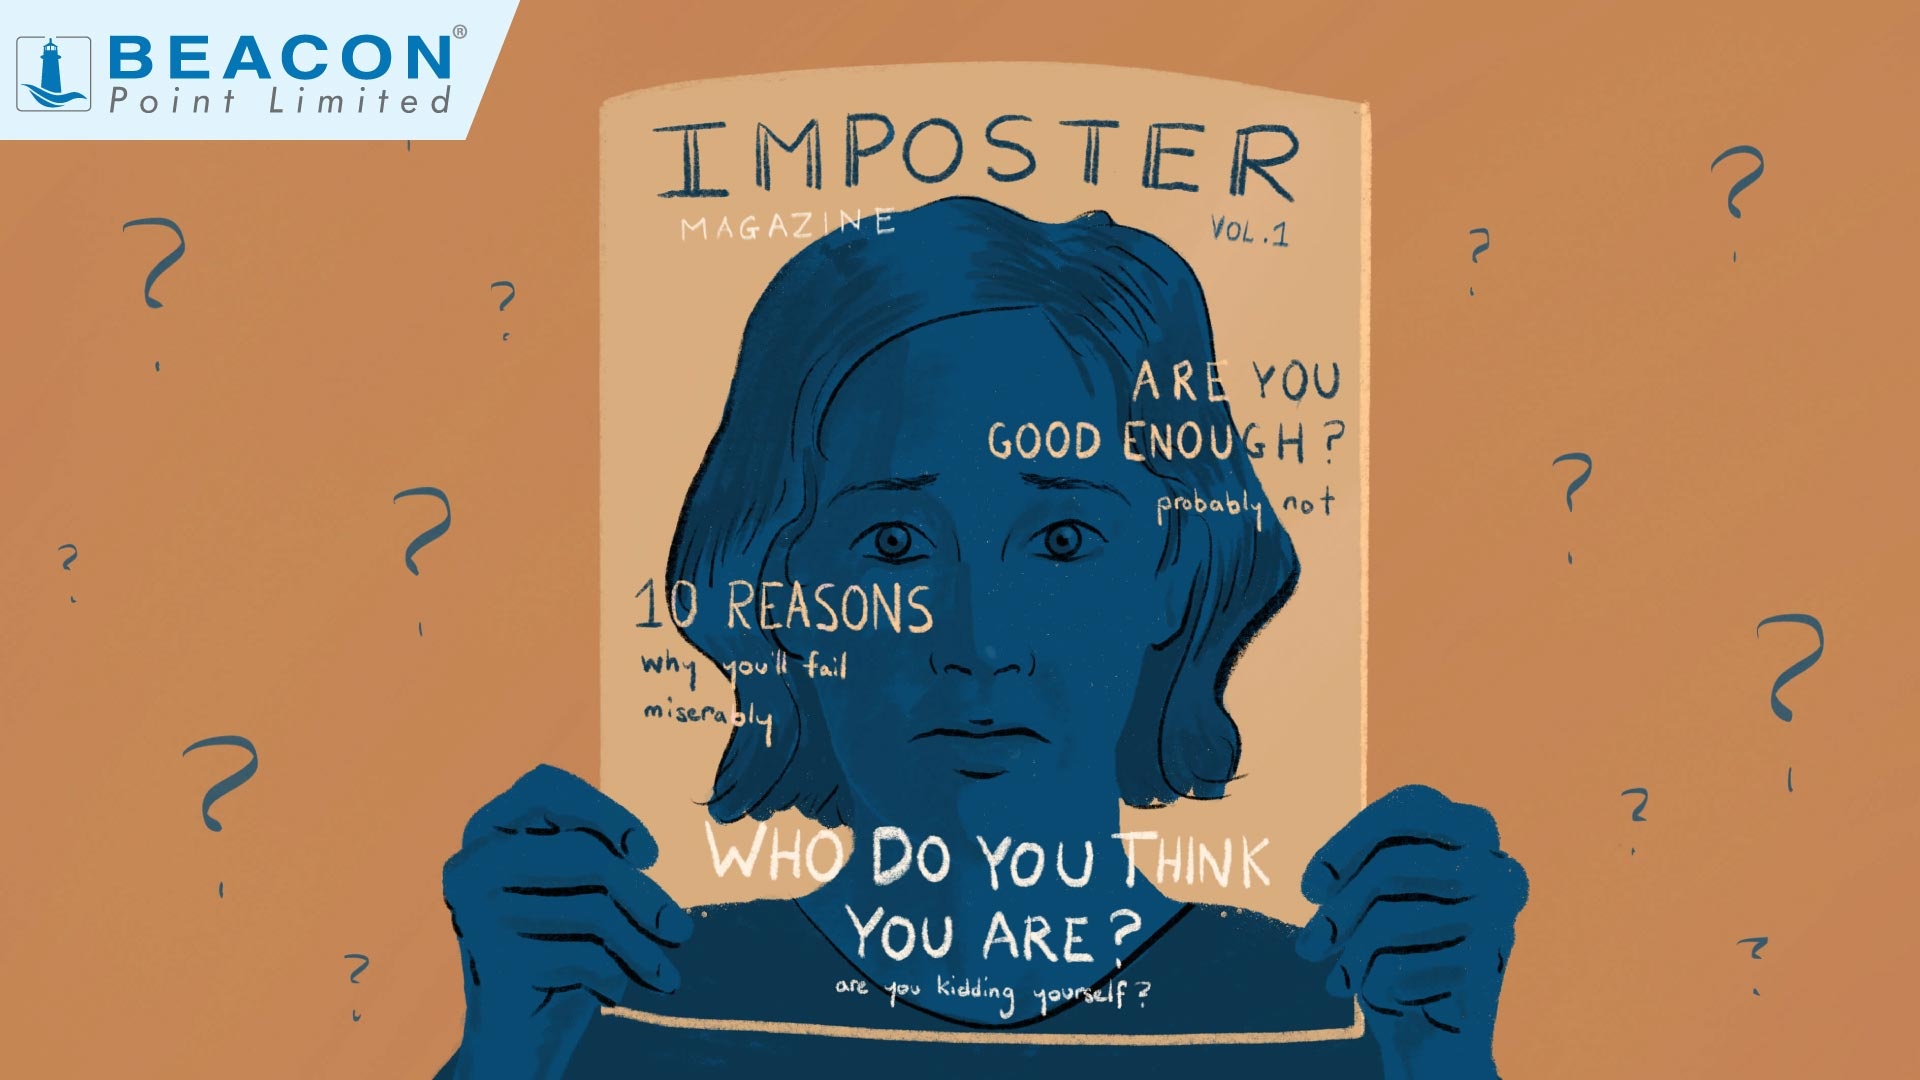 ইম্পোস্টার সিনড্রোম | Imposter Syndrome